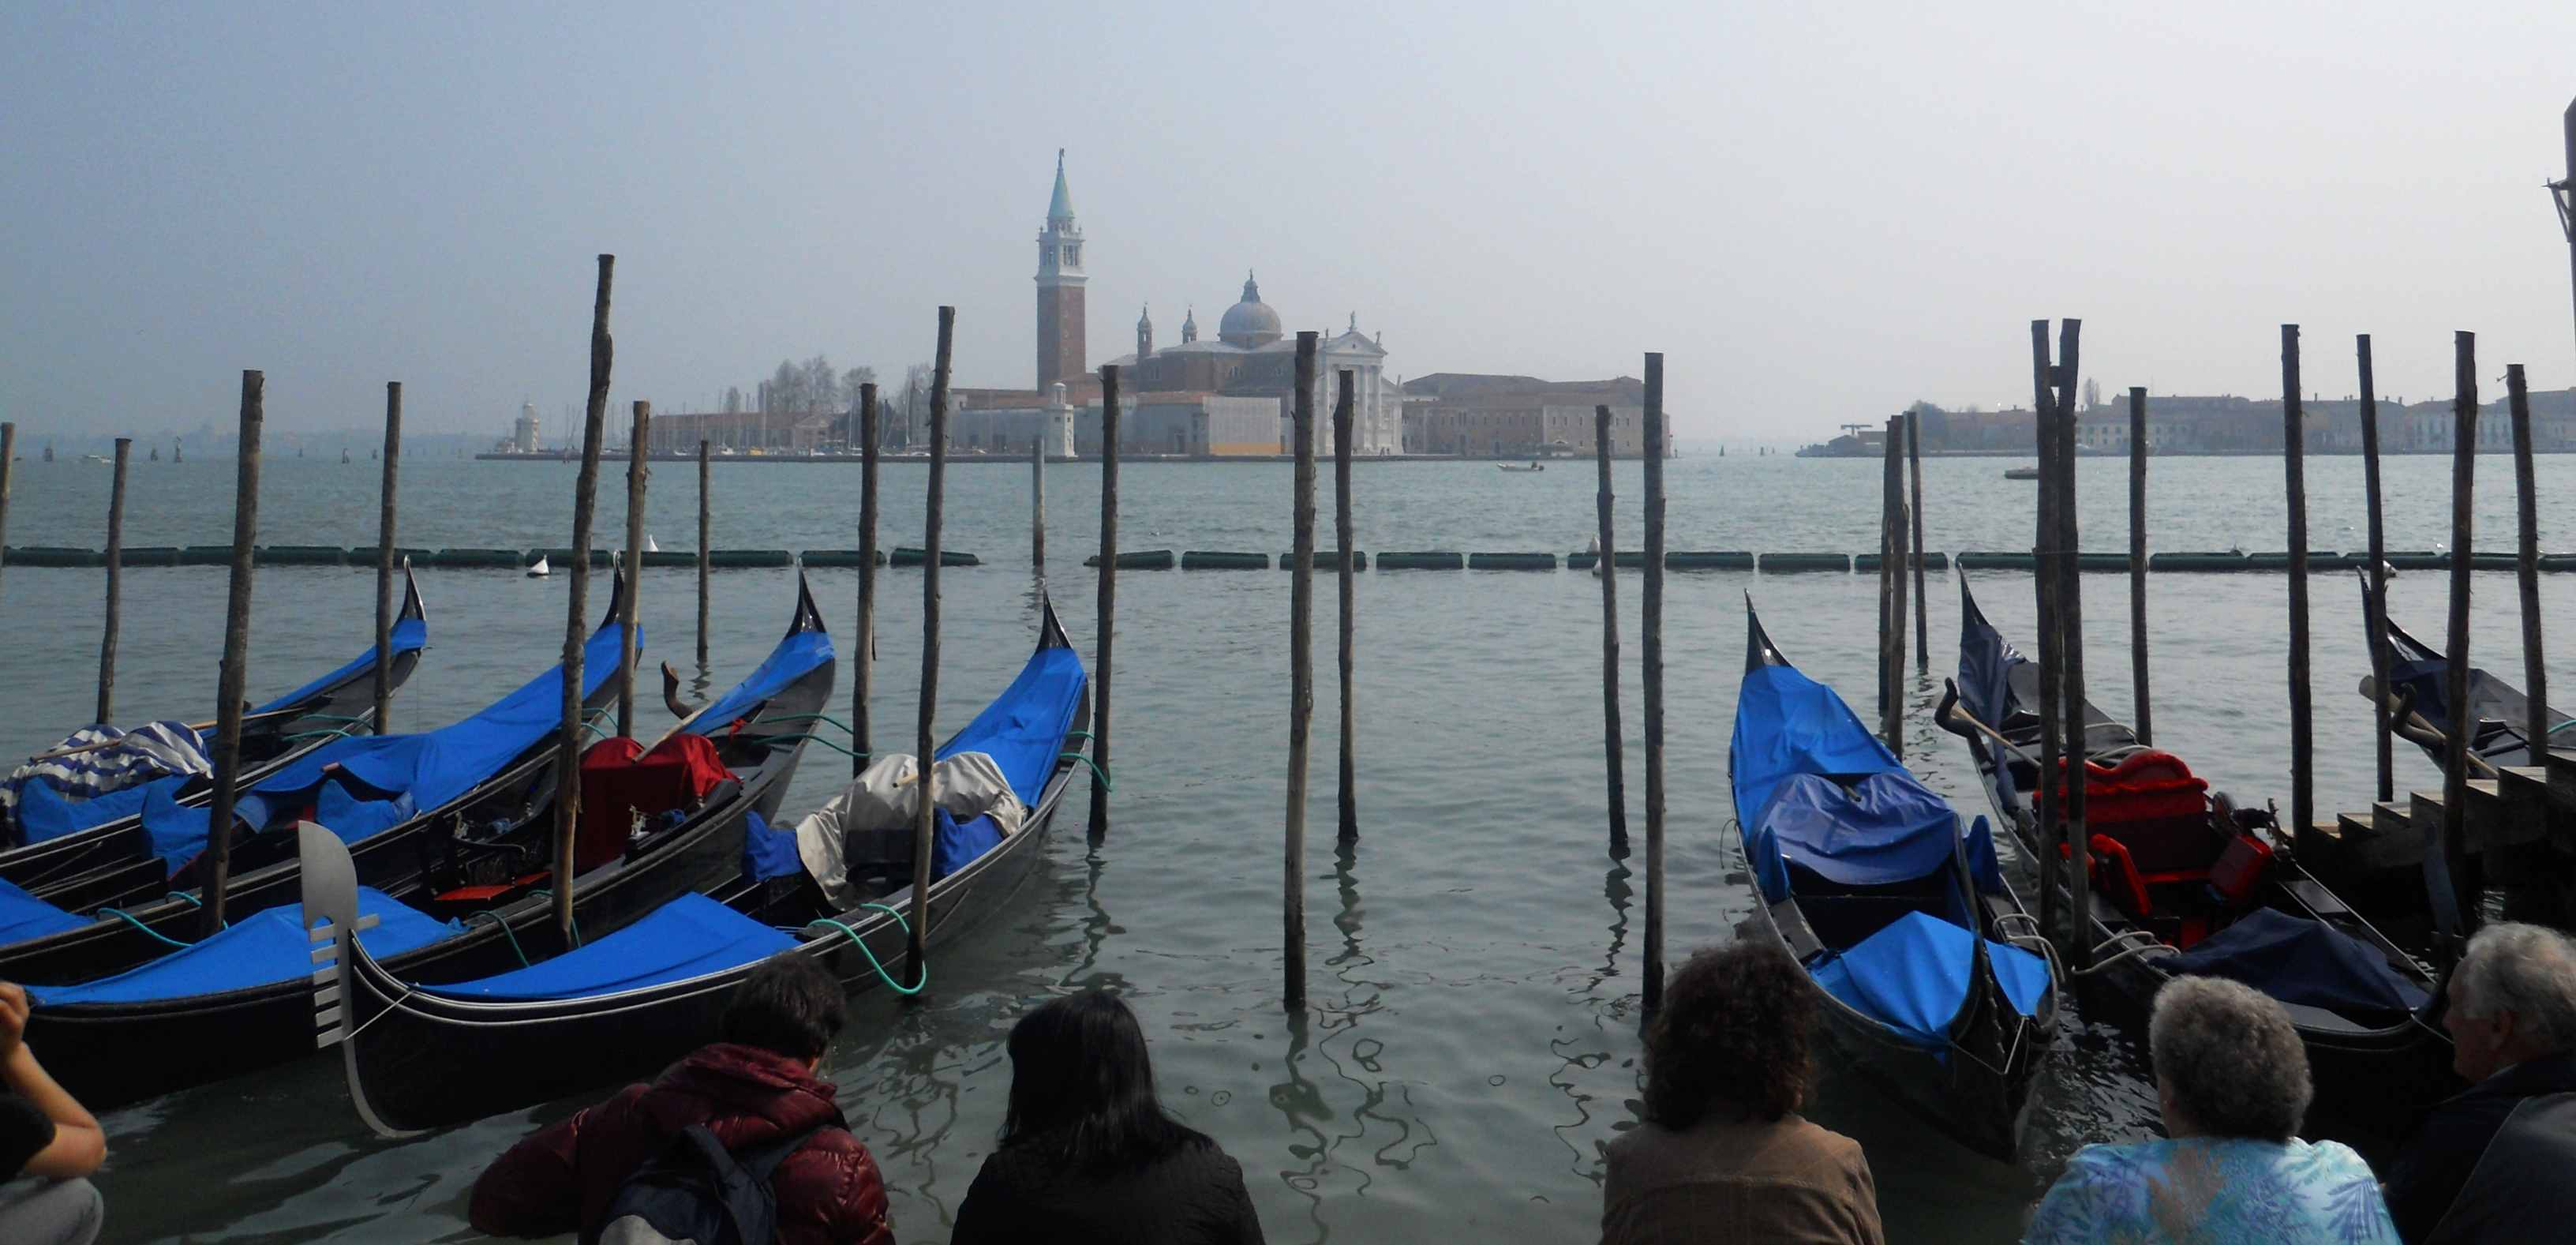 File:Gondolas at San Marco Pier (5986671571).jpg - Wikimedia Commons